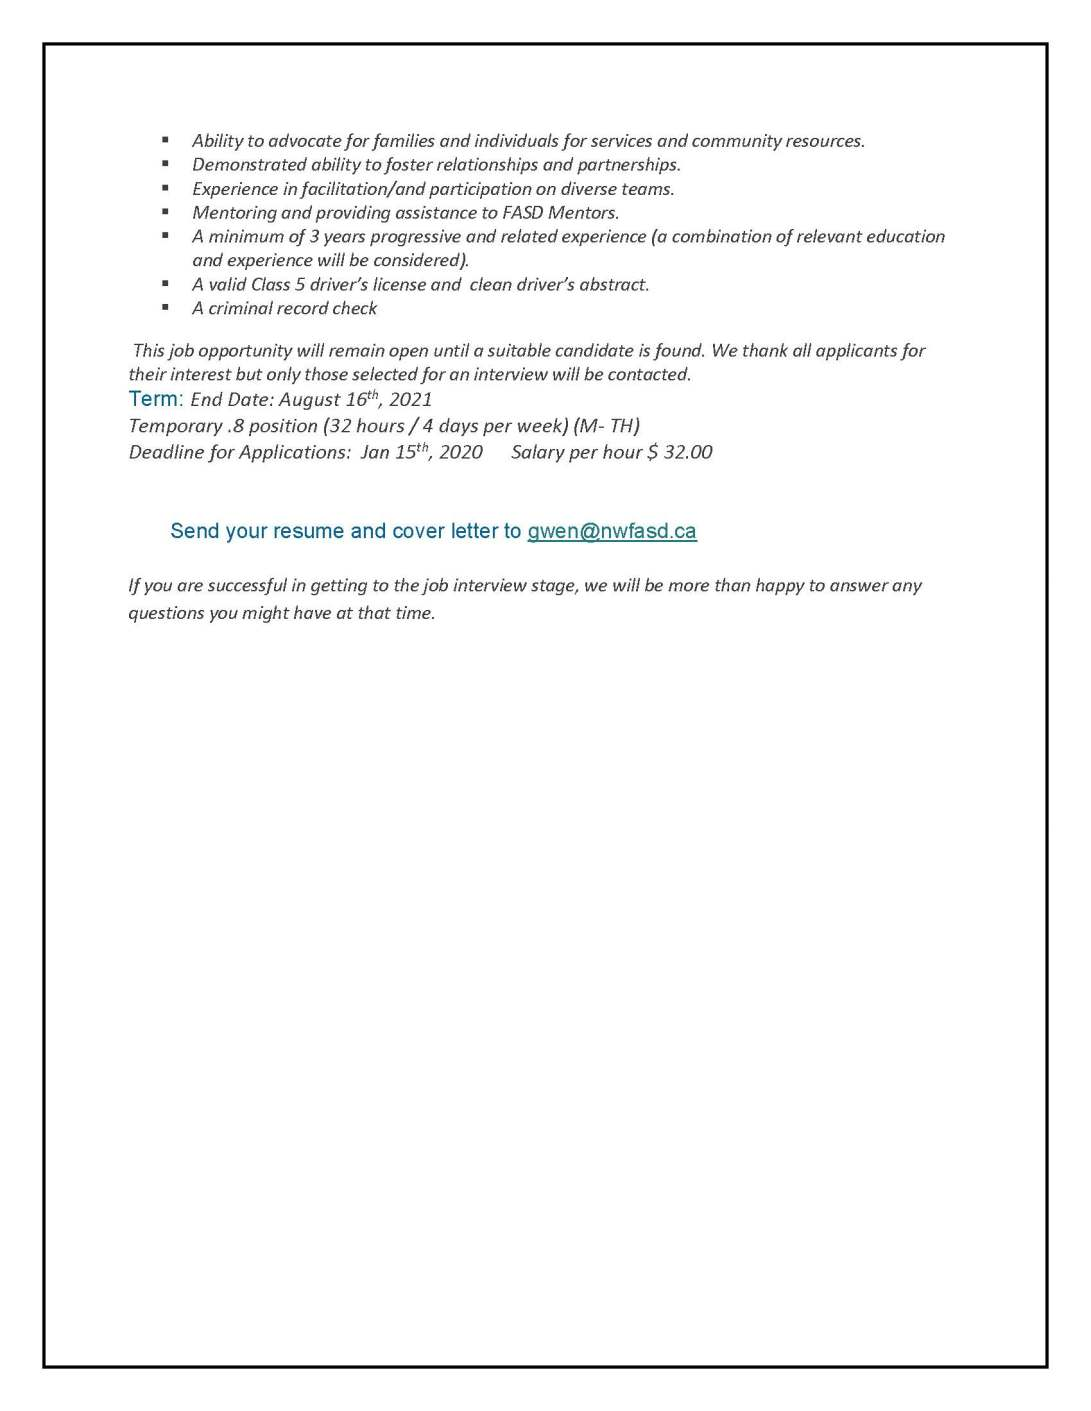 FASD Community Resource advocate Job Ad_Page_2.jpg